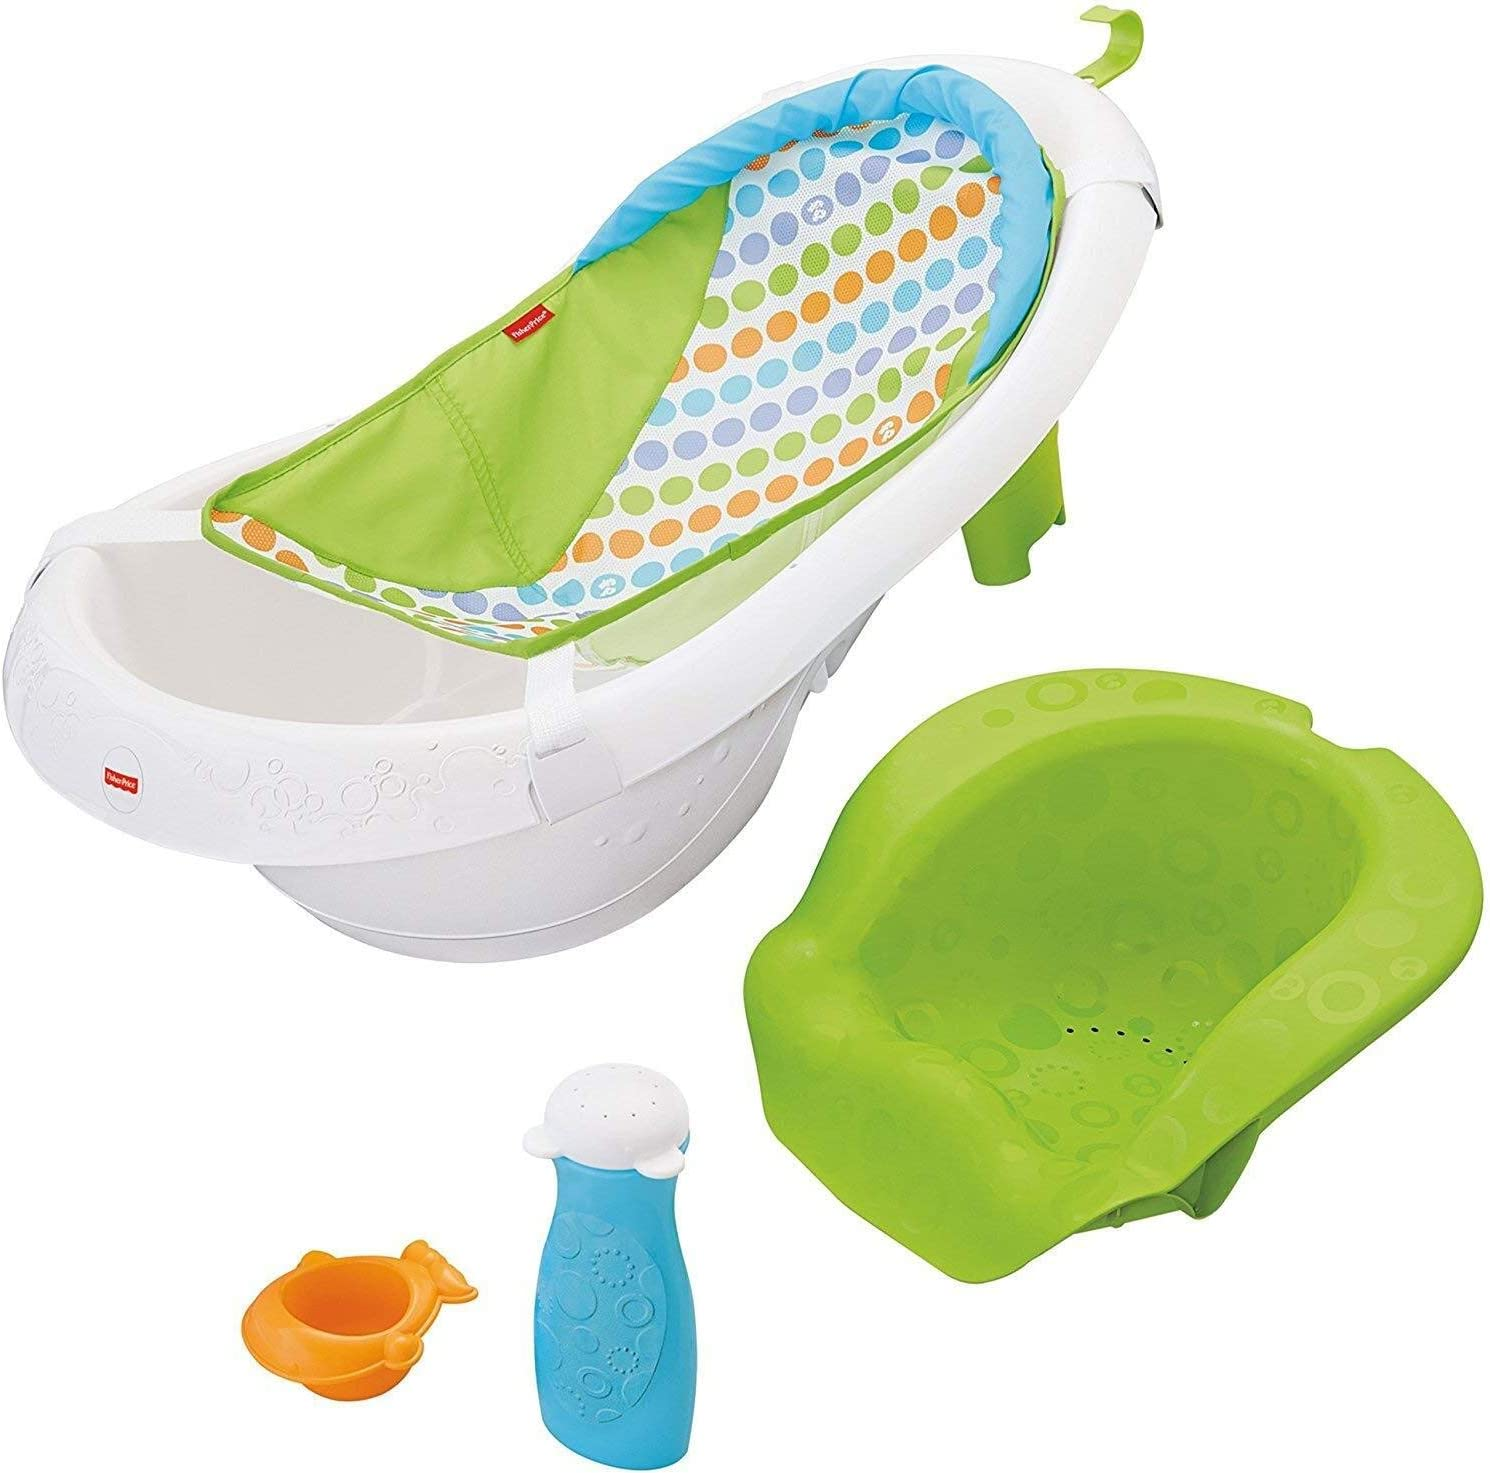 Fisher-Price 4-in-1 Sling 'n Seat Tub, Multicolor : Baby